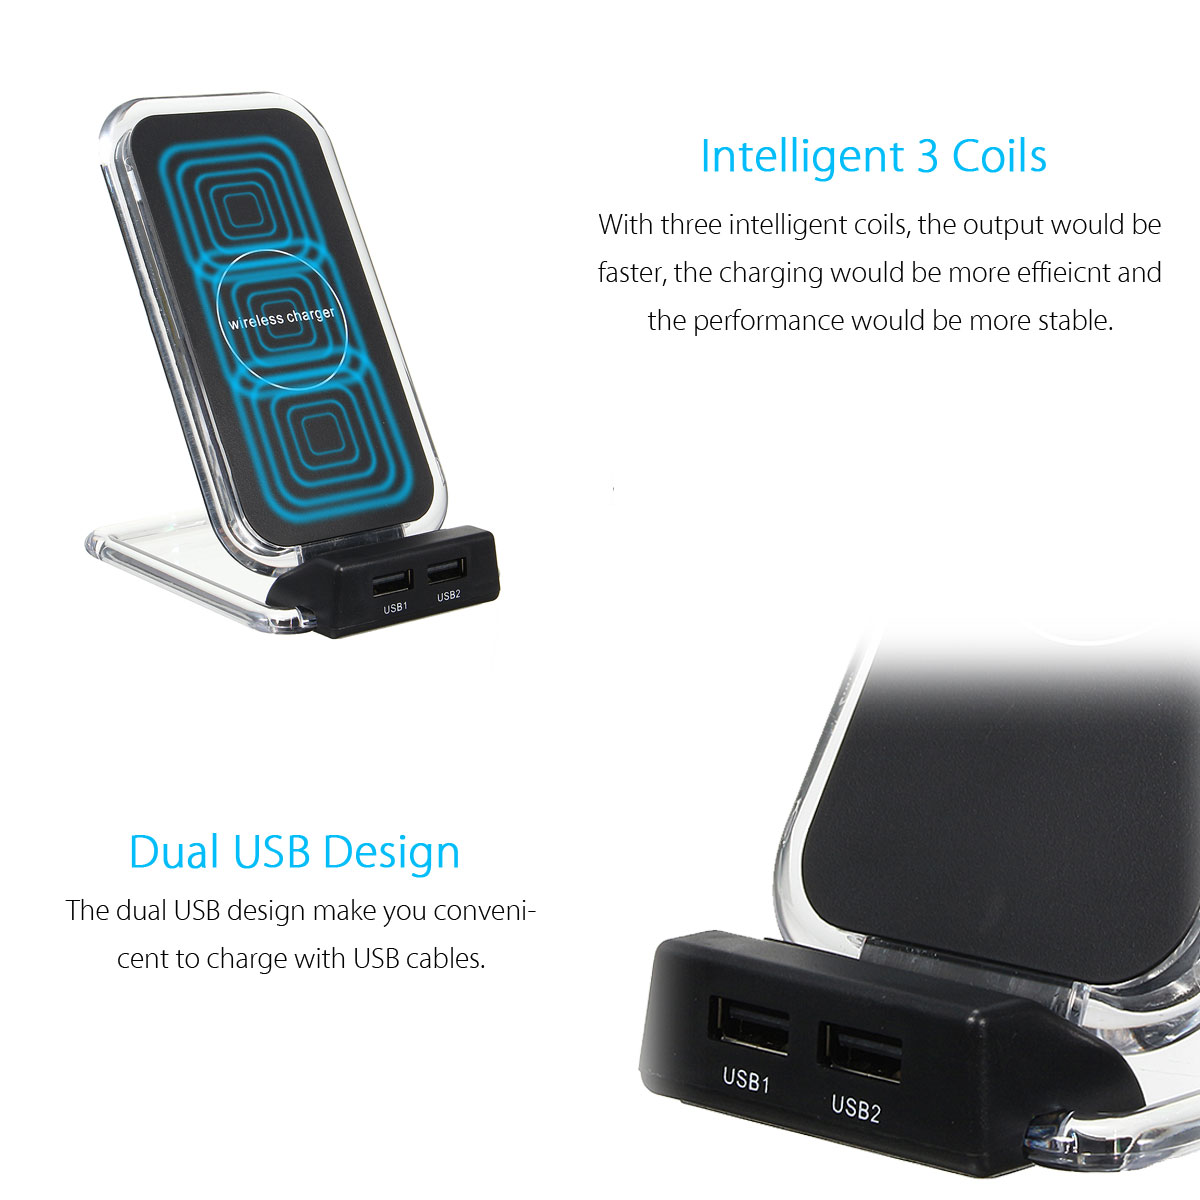 3 Coils Dual USB Ports Fast Charging Desktop Stand Qi Wireless Charger for Samsung S8 iPhone 8 X